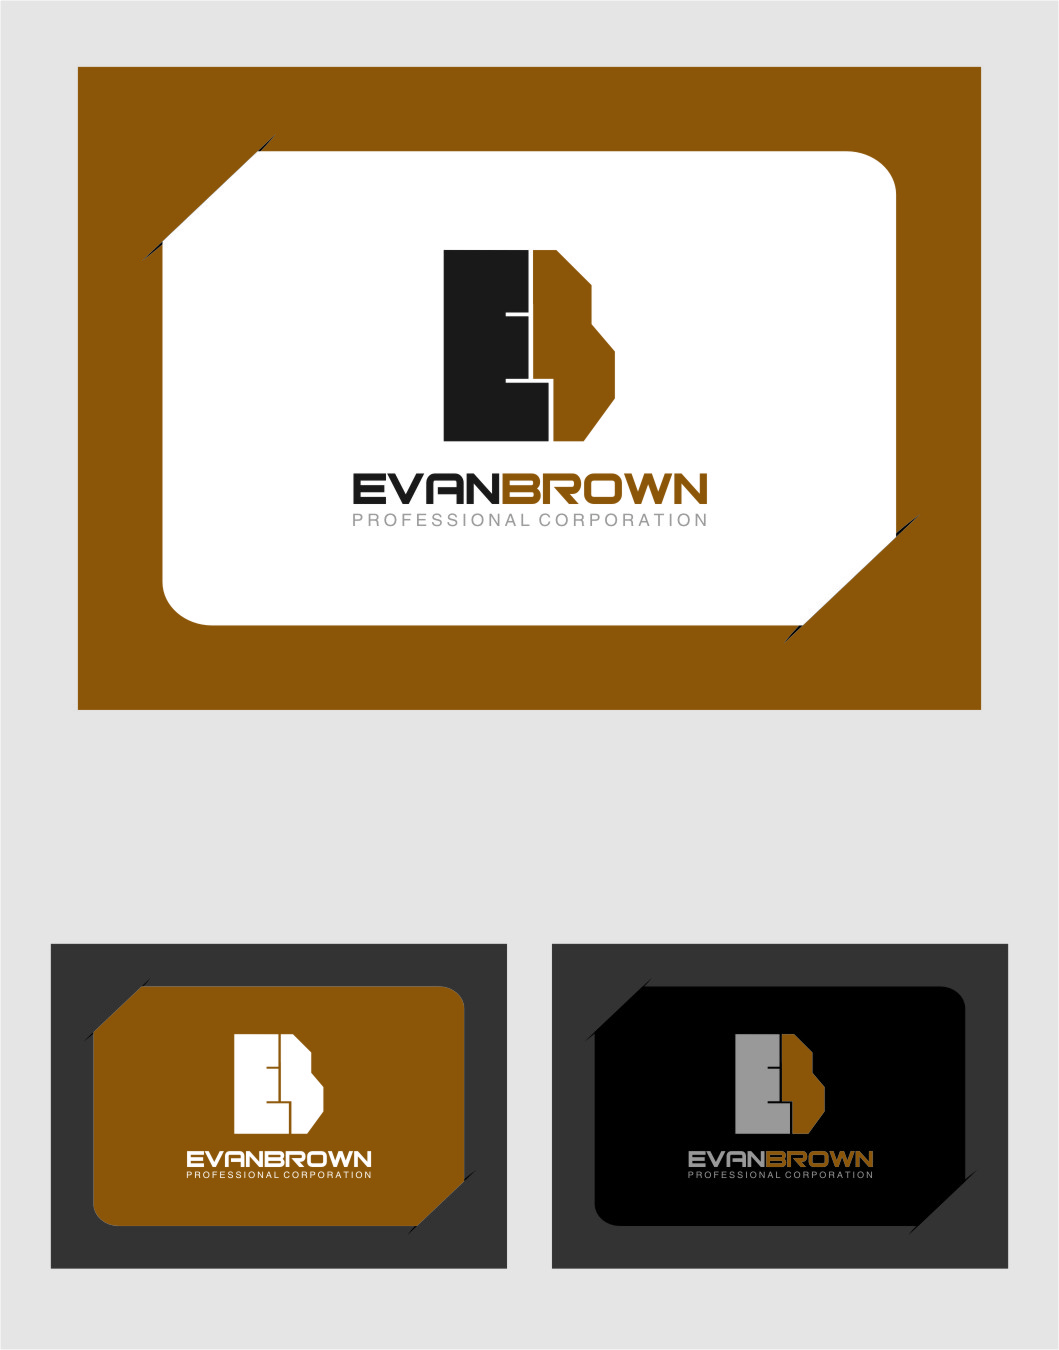 Logo Design by Ngepet_art - Entry No. 165 in the Logo Design Contest Inspiring Logo Design for Evan Brown Professional Corporation.